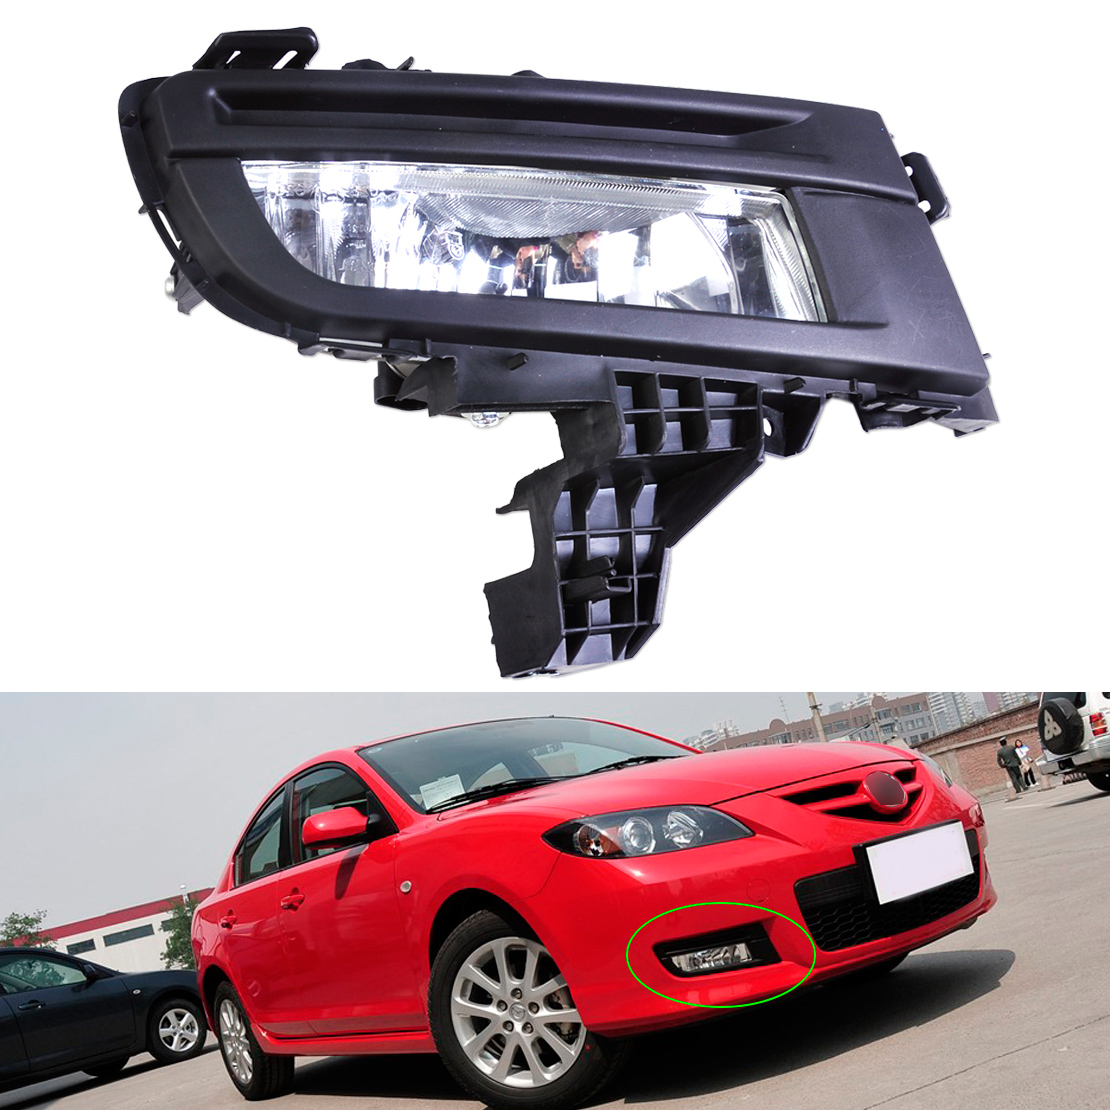 DWCX High Quality ABS 12V 51W Front Right Side Black Fog Light Lamp 9006 Replacement for Mazda 3 2007 2008 2009 Car Accessories free shipping for vw passat b6 2006 2007 2008 2009 2010 2011 new front left and right side high quality 9 led fog lamp fog light